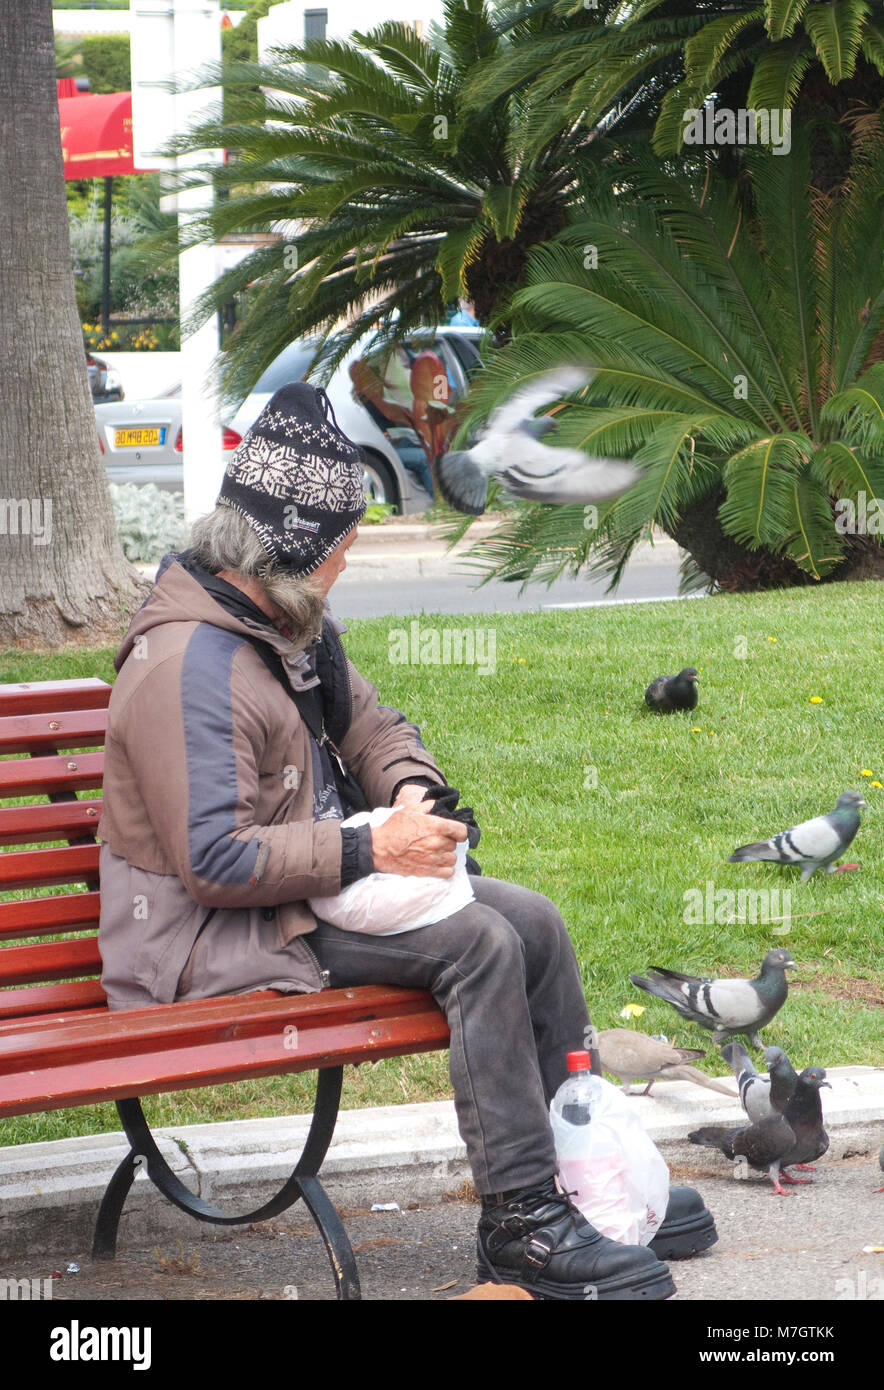 Poor homeless person sitting on a bench an feeds pigeons, Boulevard Croisette, Cannes, french riviera, South France, - Stock Image